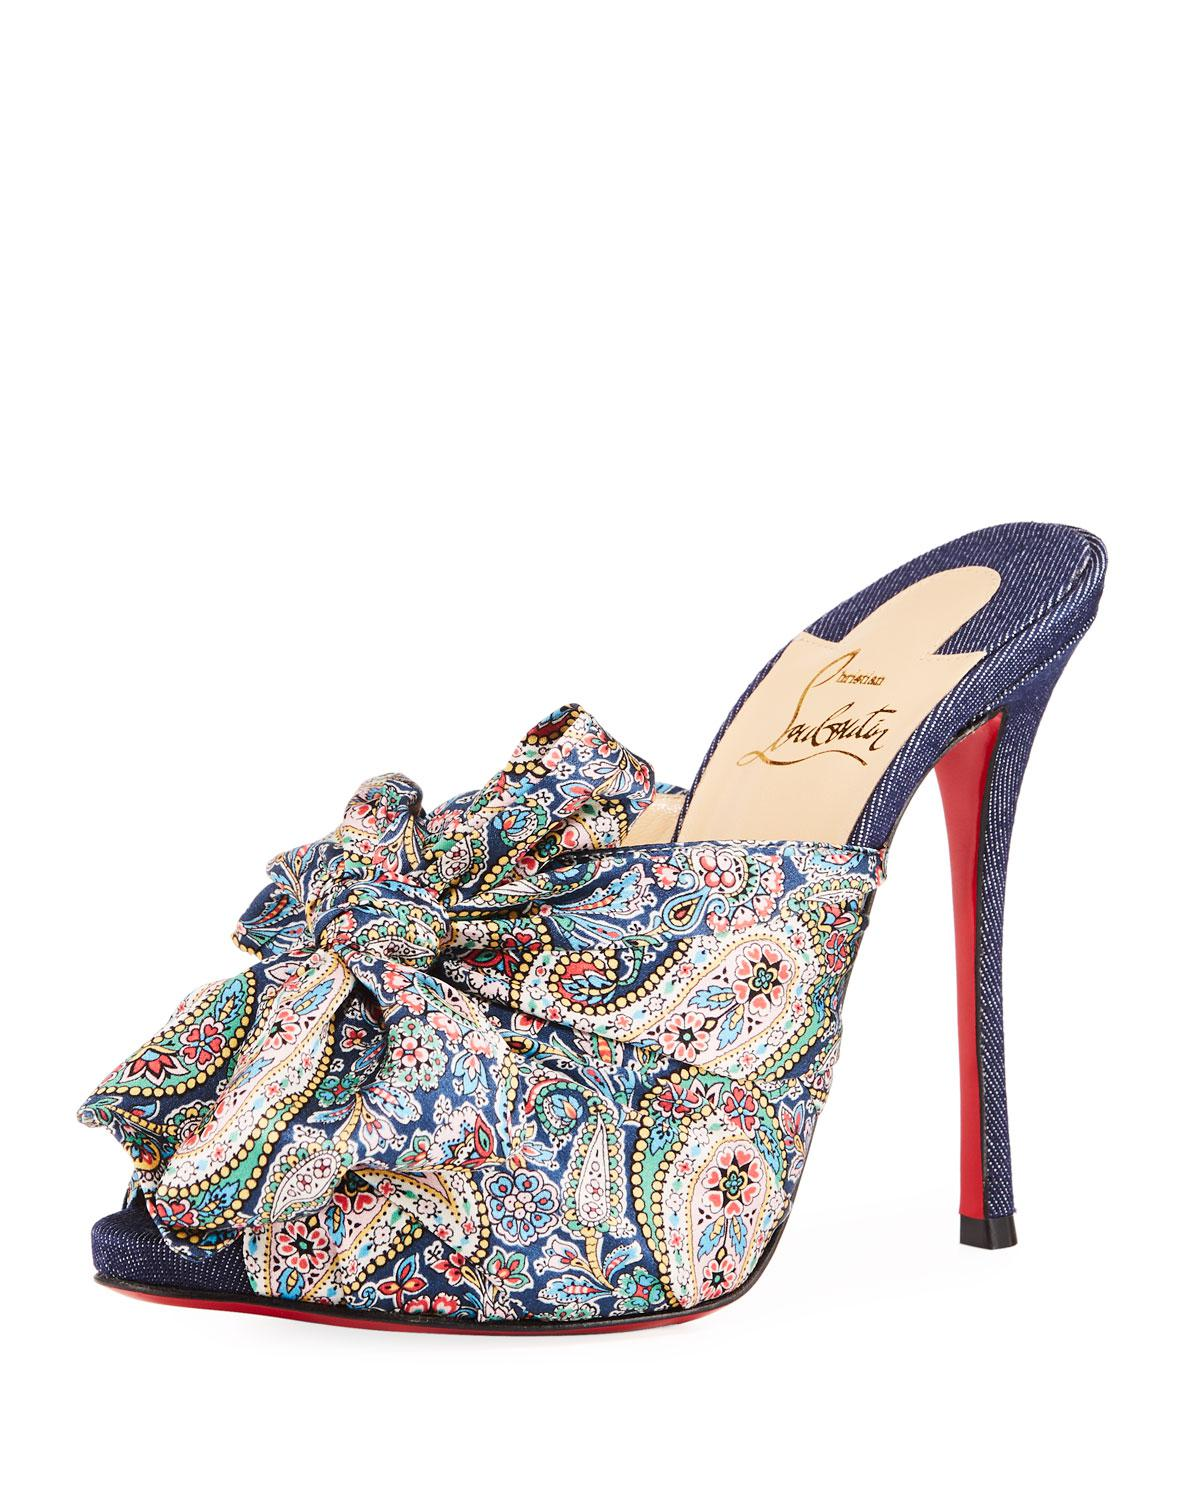 Moniquissima 120 paisley satin and denim mules Christian Louboutin Outlet Store o6cWJP